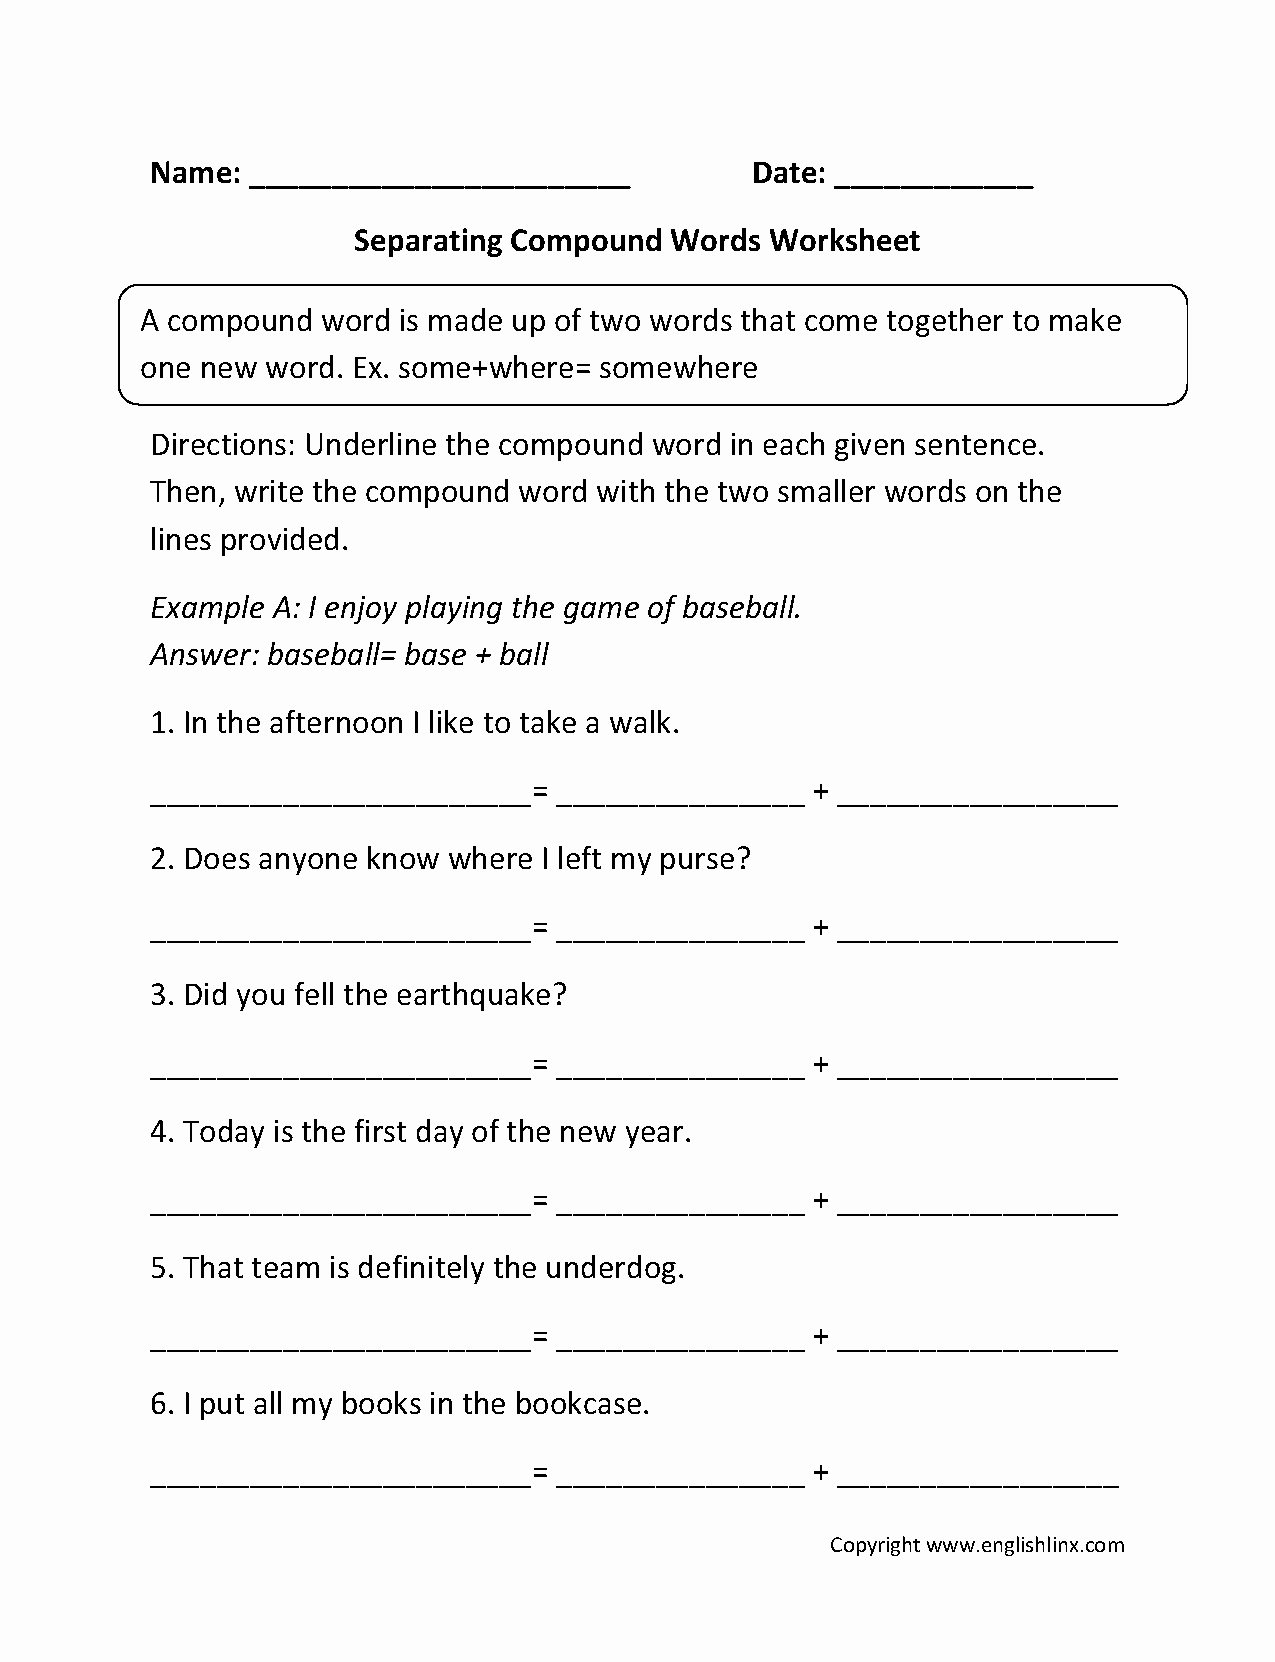 Transition Words Practice Worksheet Awesome Transition Words Worksheet Middle School